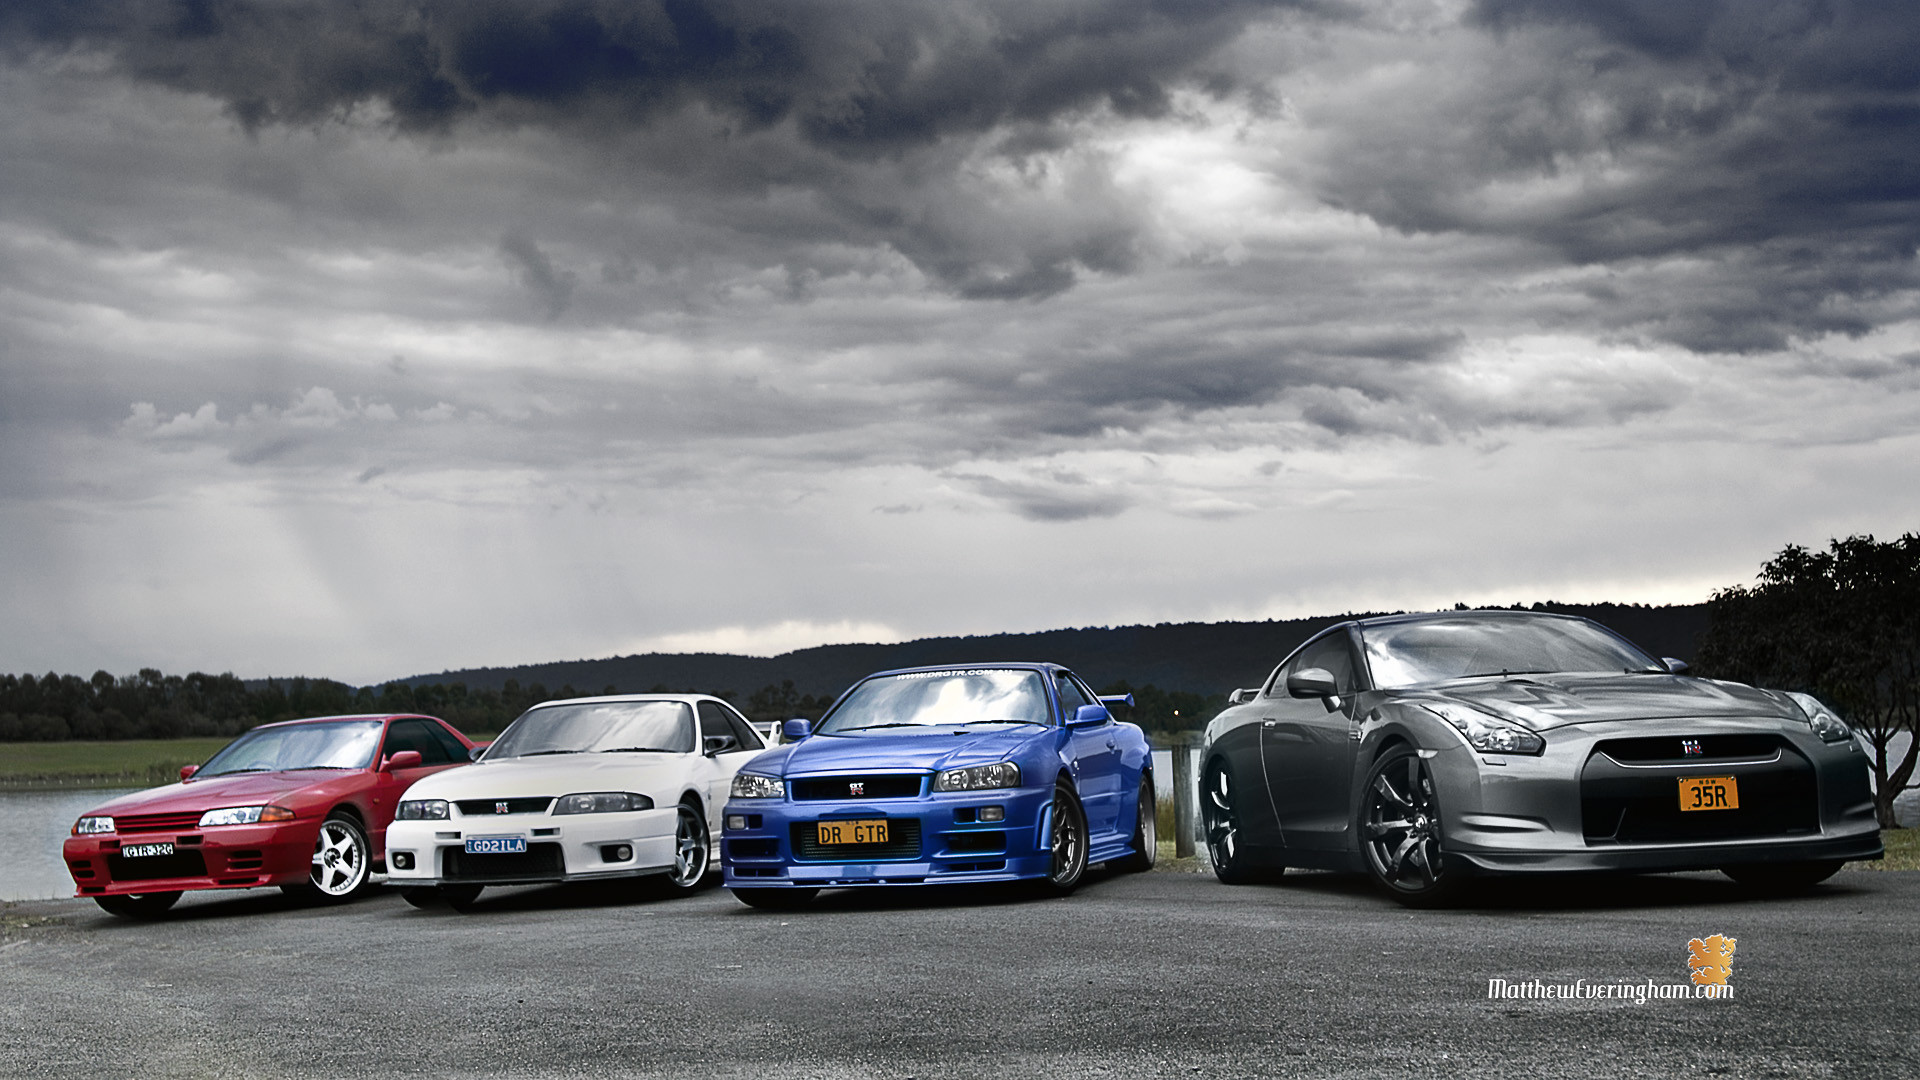 1920x1080 #720x1280 #Wallpaper #nissan, #skyline, #gt-r, #r34, #nismo, #s-tune  #mobile_background #mobile #background #samsung #Note2 | Mobile Background  | Pinterest ...